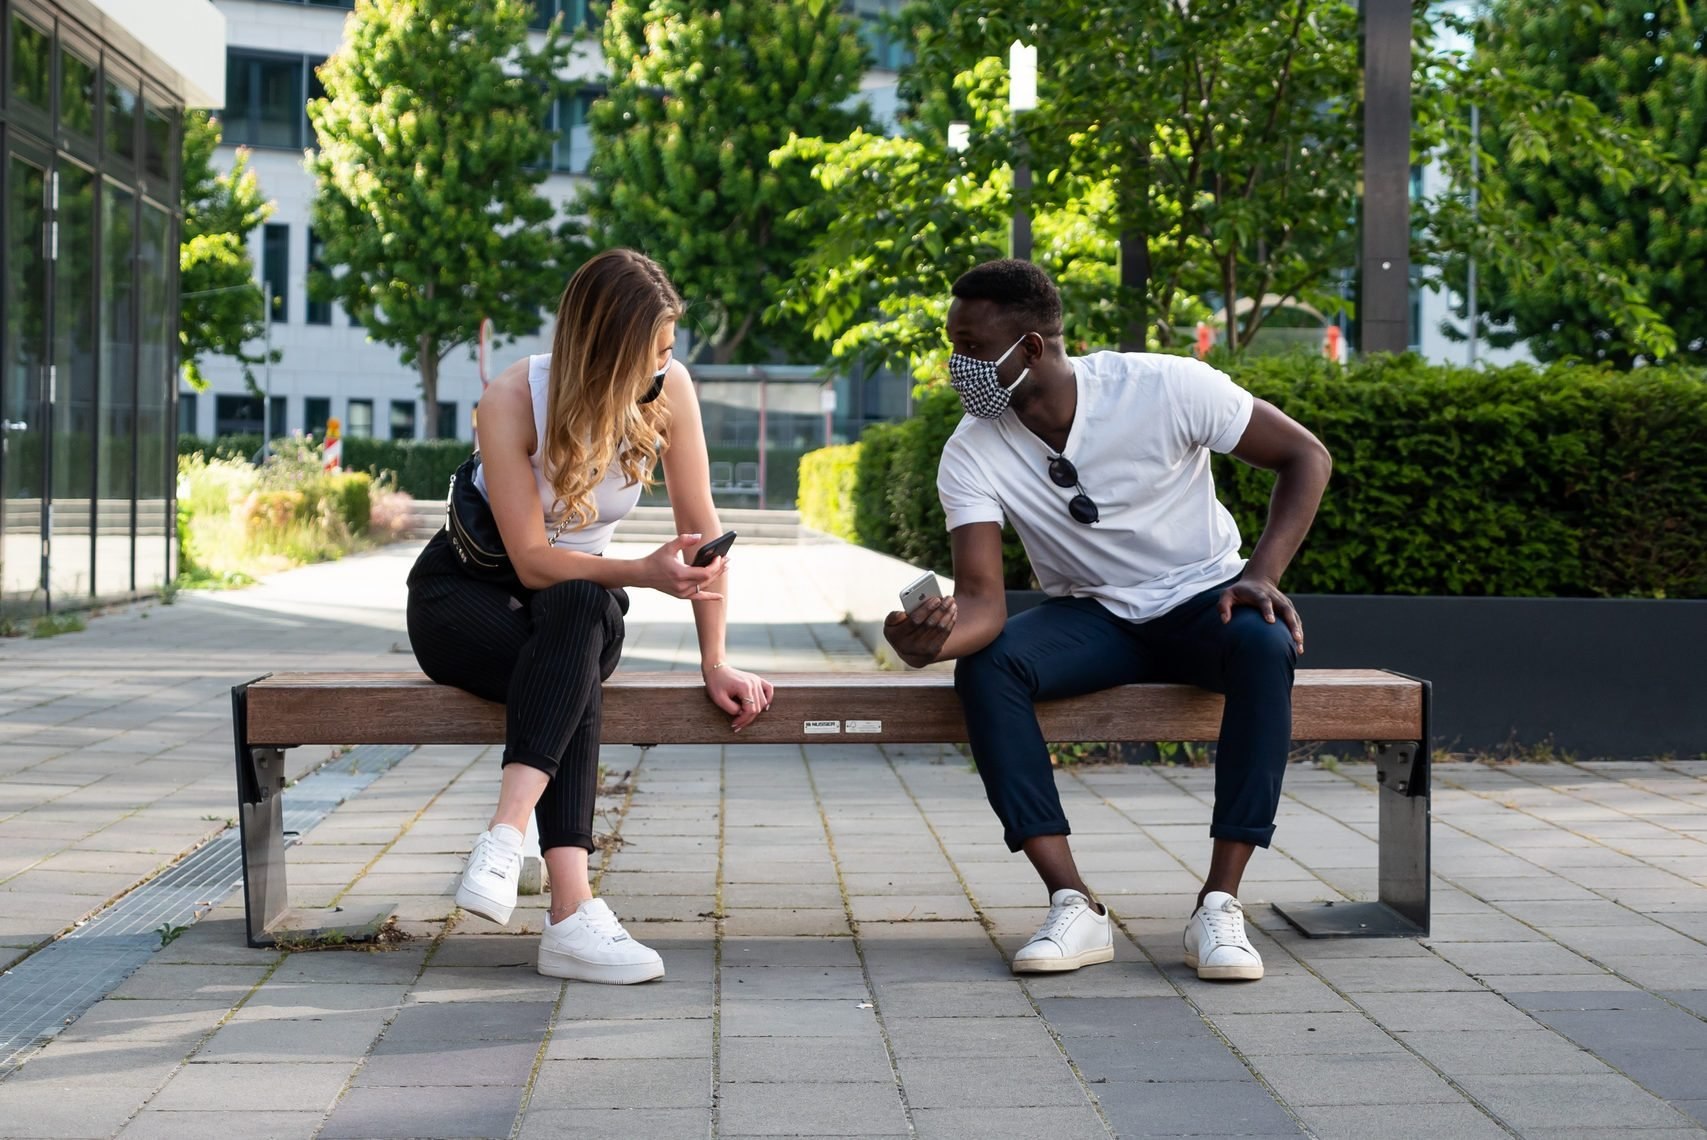 Young Man and Woman Social Distancing on Bench Using Phones